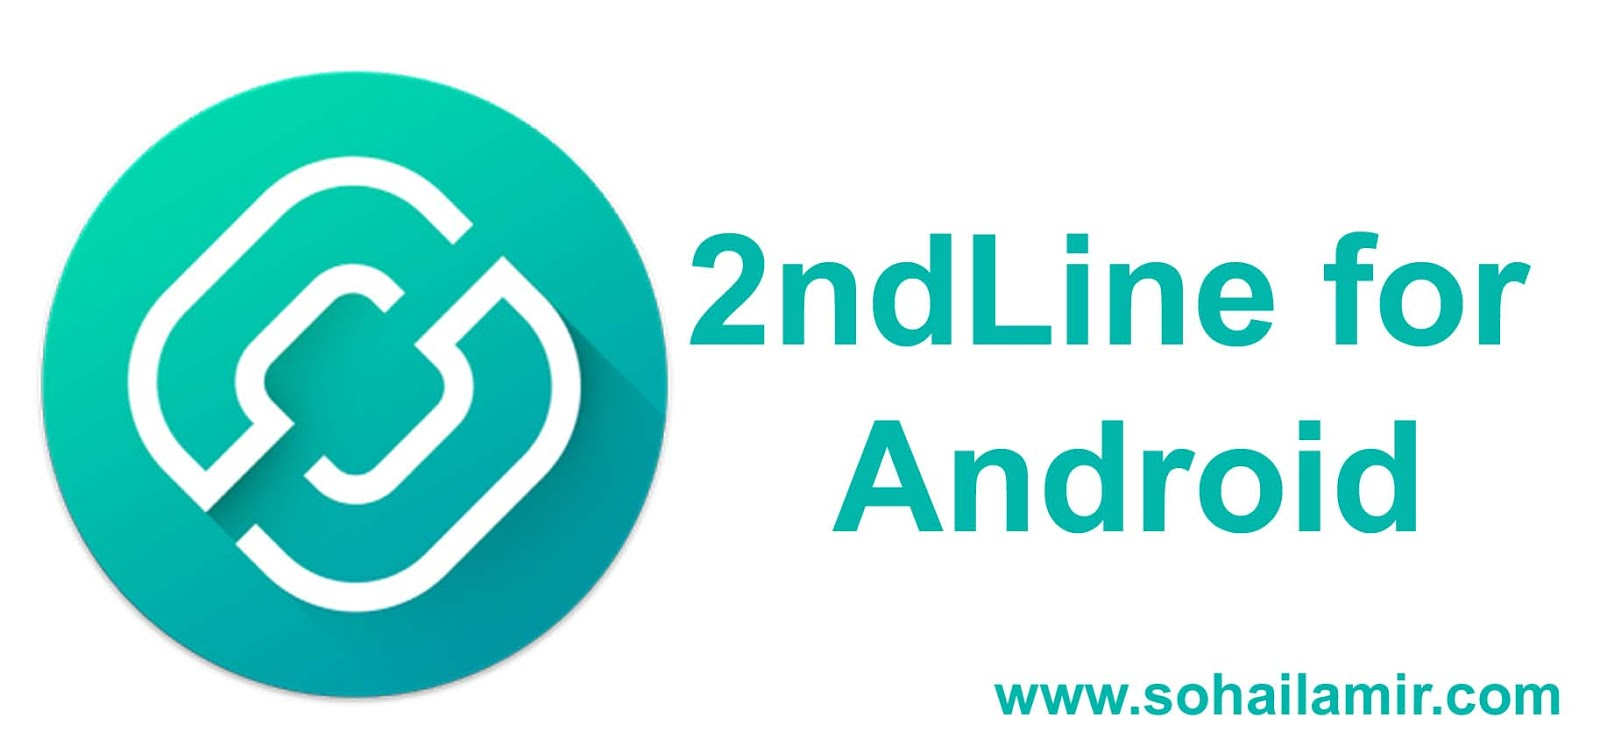 Download 2ndLine for Android - APK | | 2019 - Sohail Amir